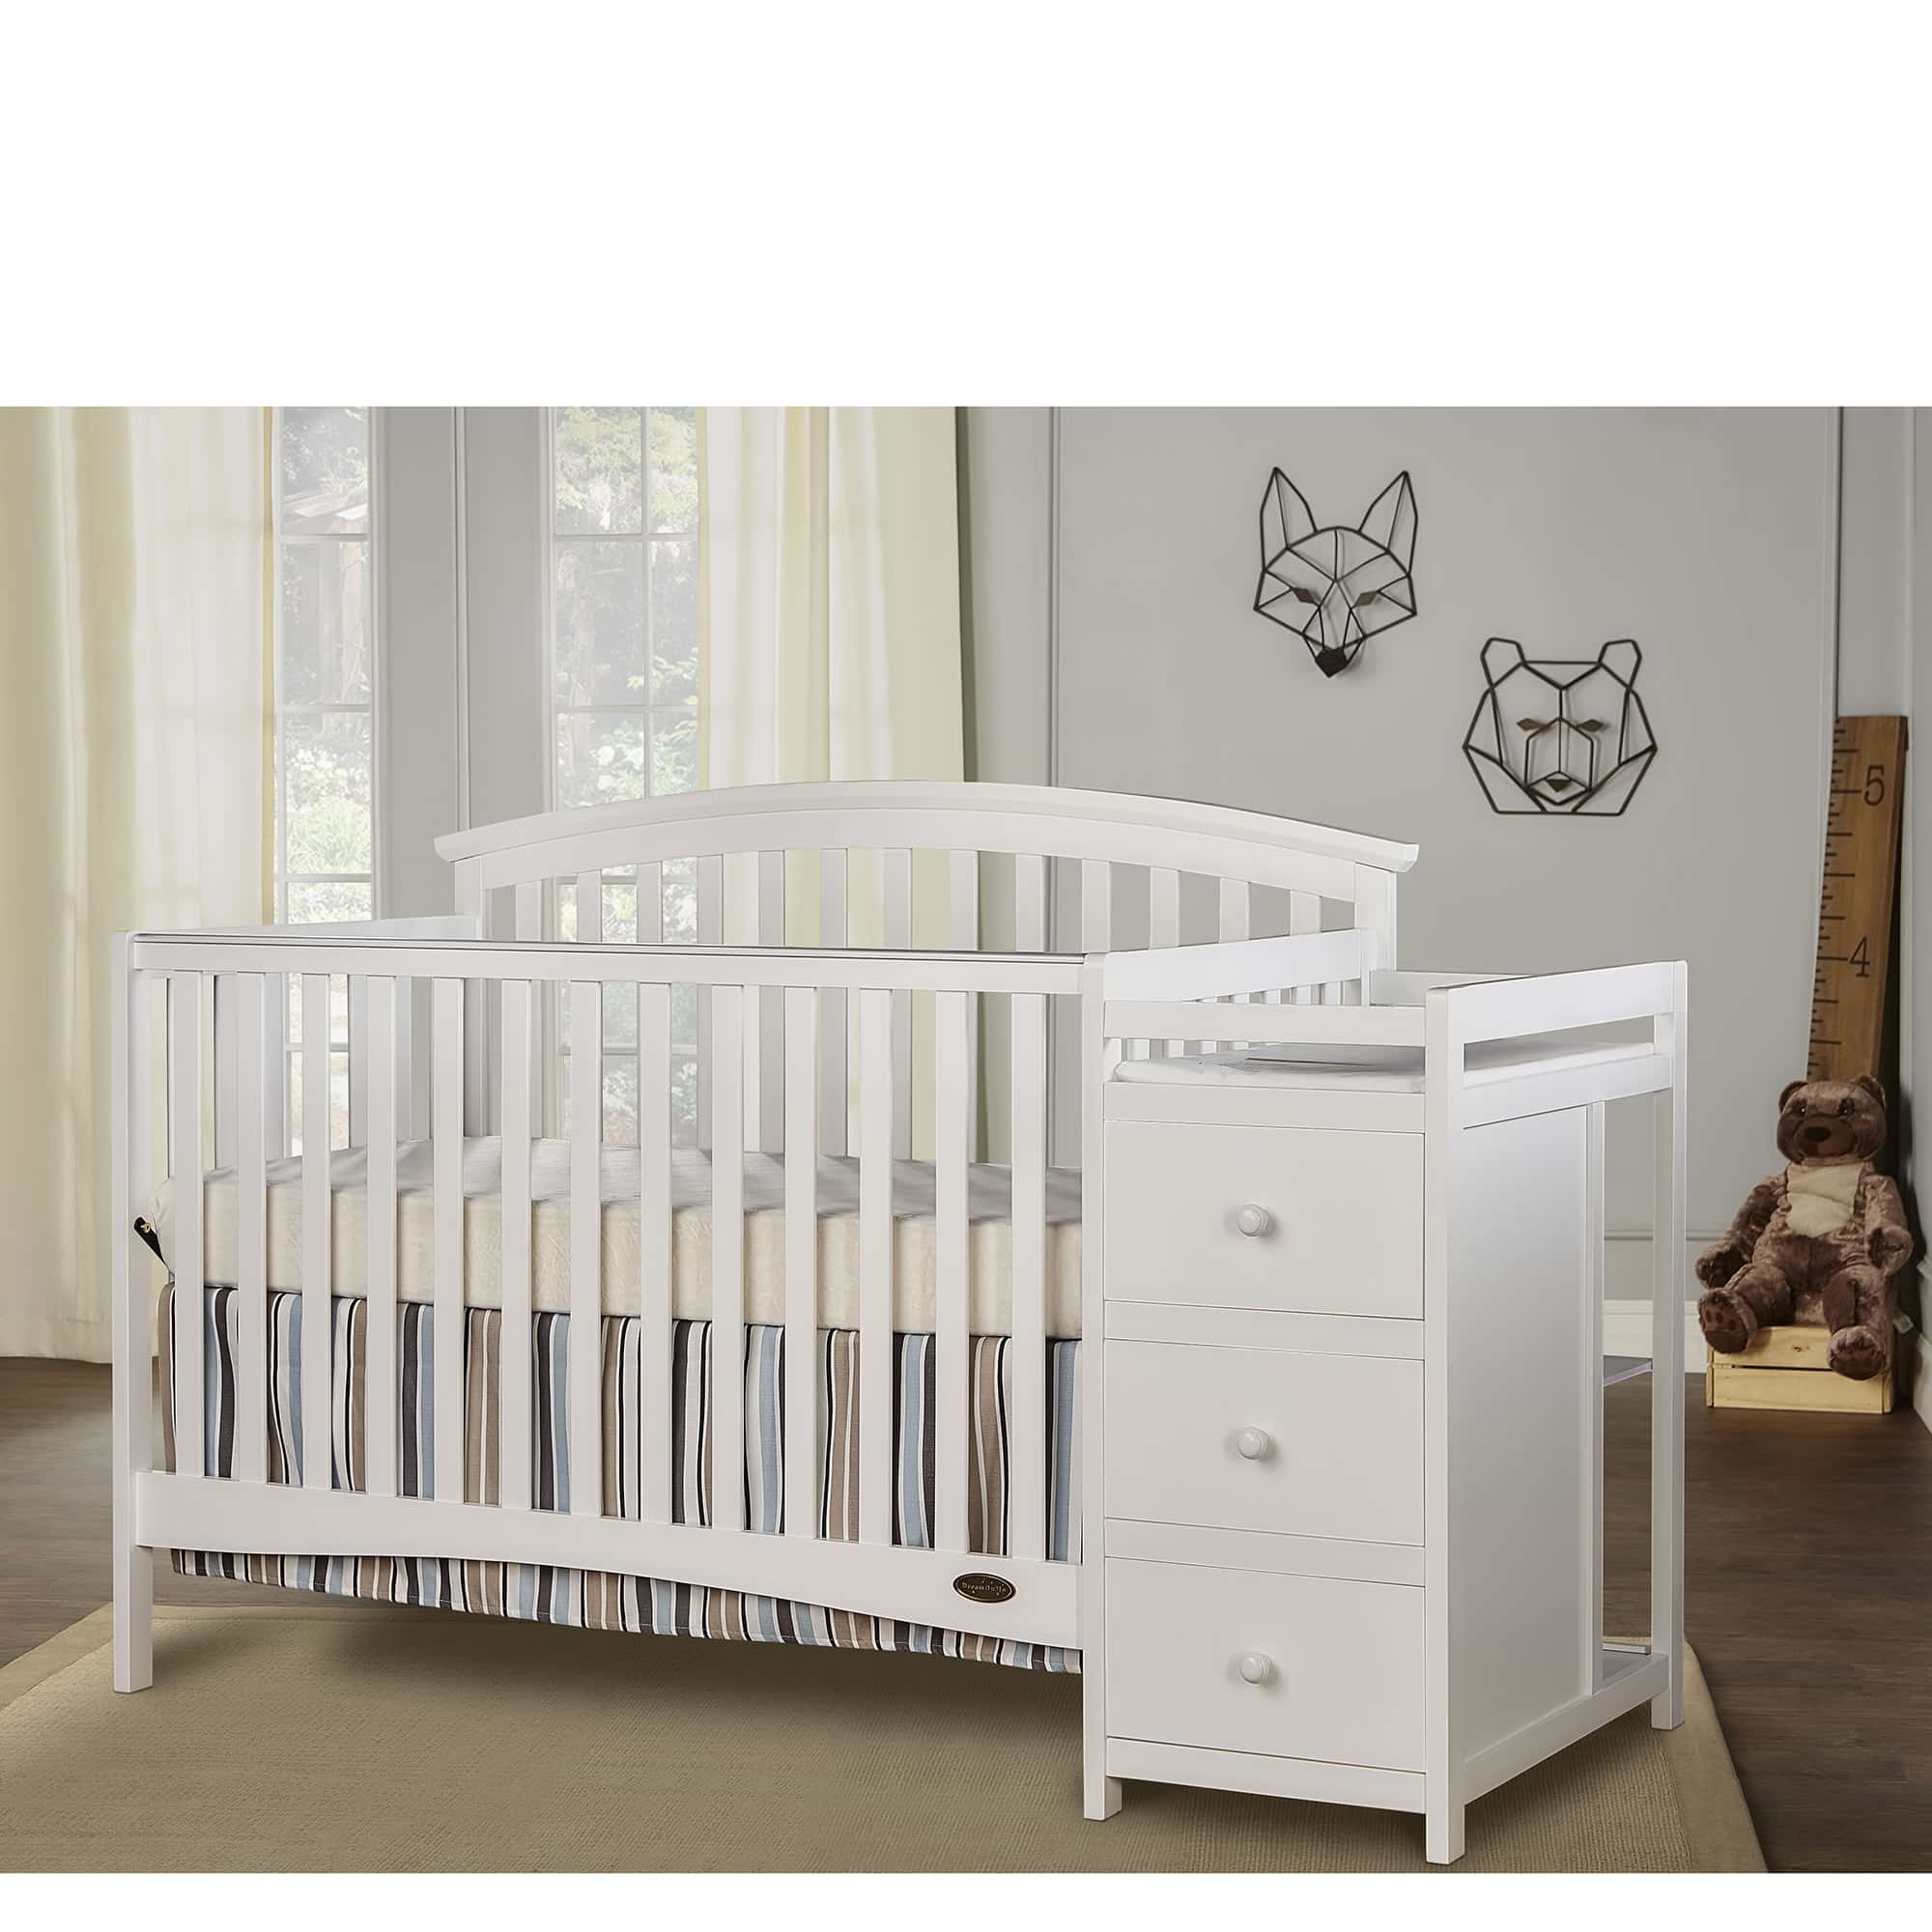 656_W_White_Niko_5_in_1_Convertible_Crib_With_Changer-1